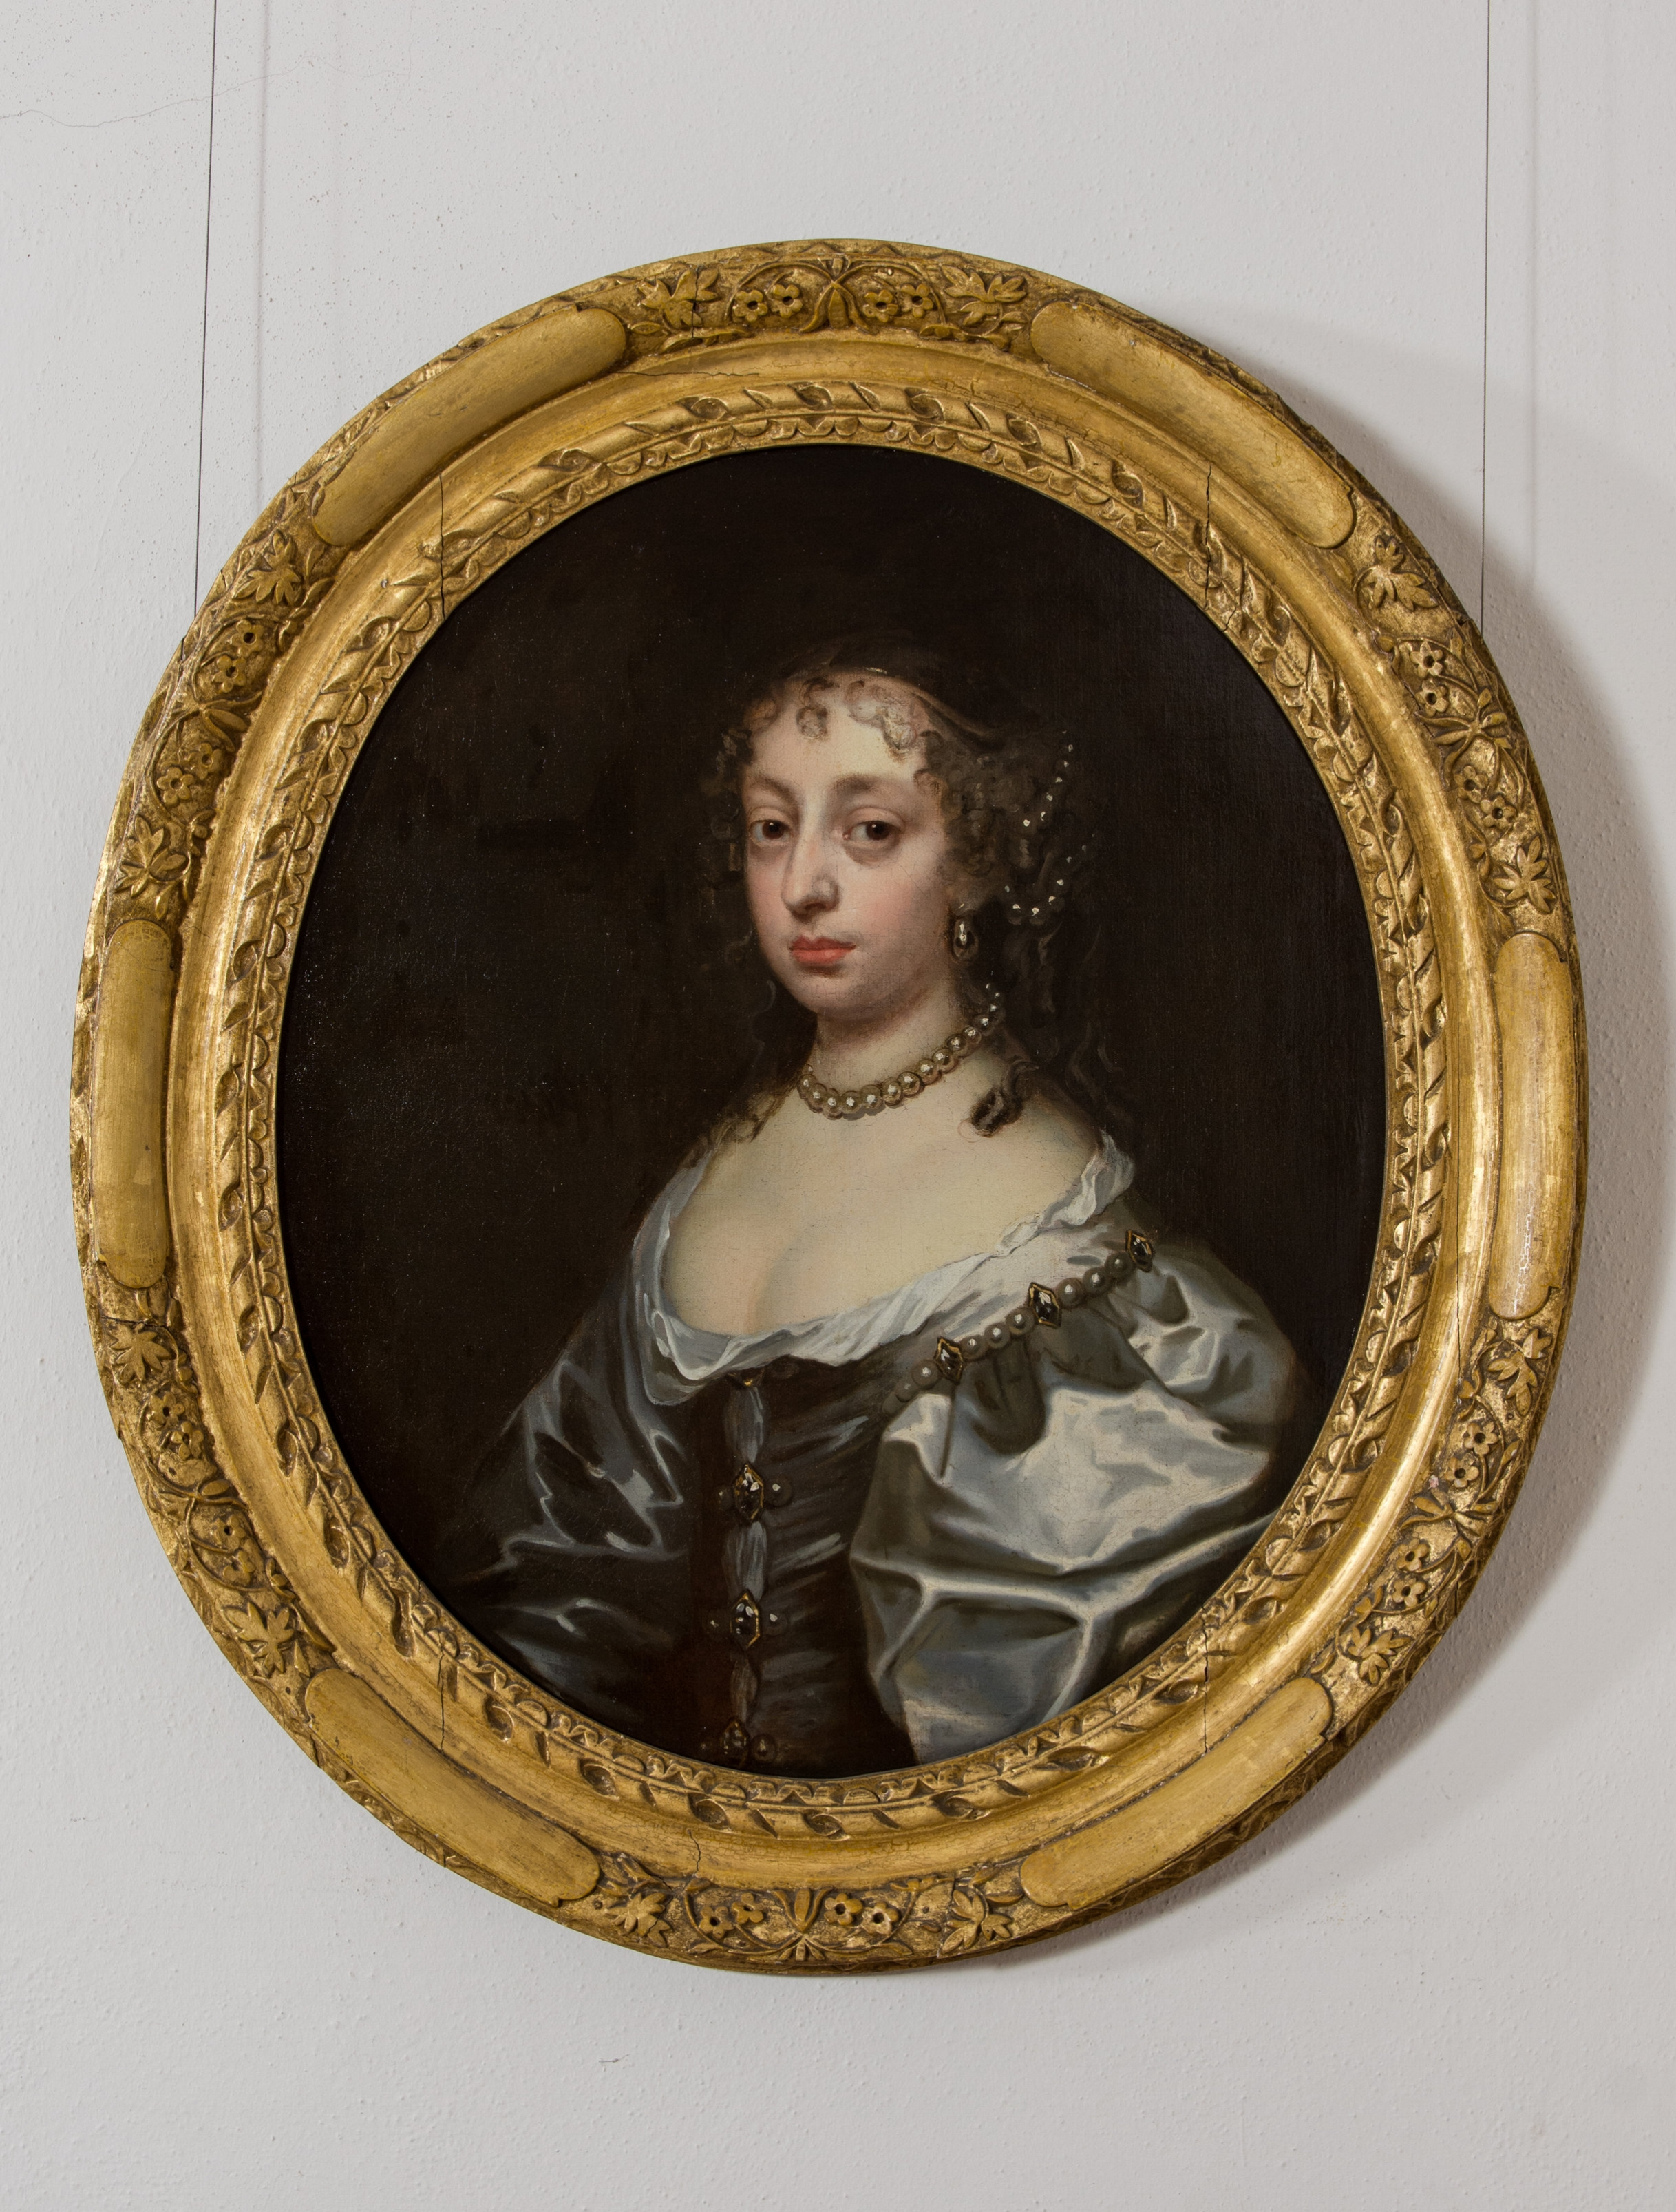 Portrait of a Noblewoman, wearing a blue dress, with pearls